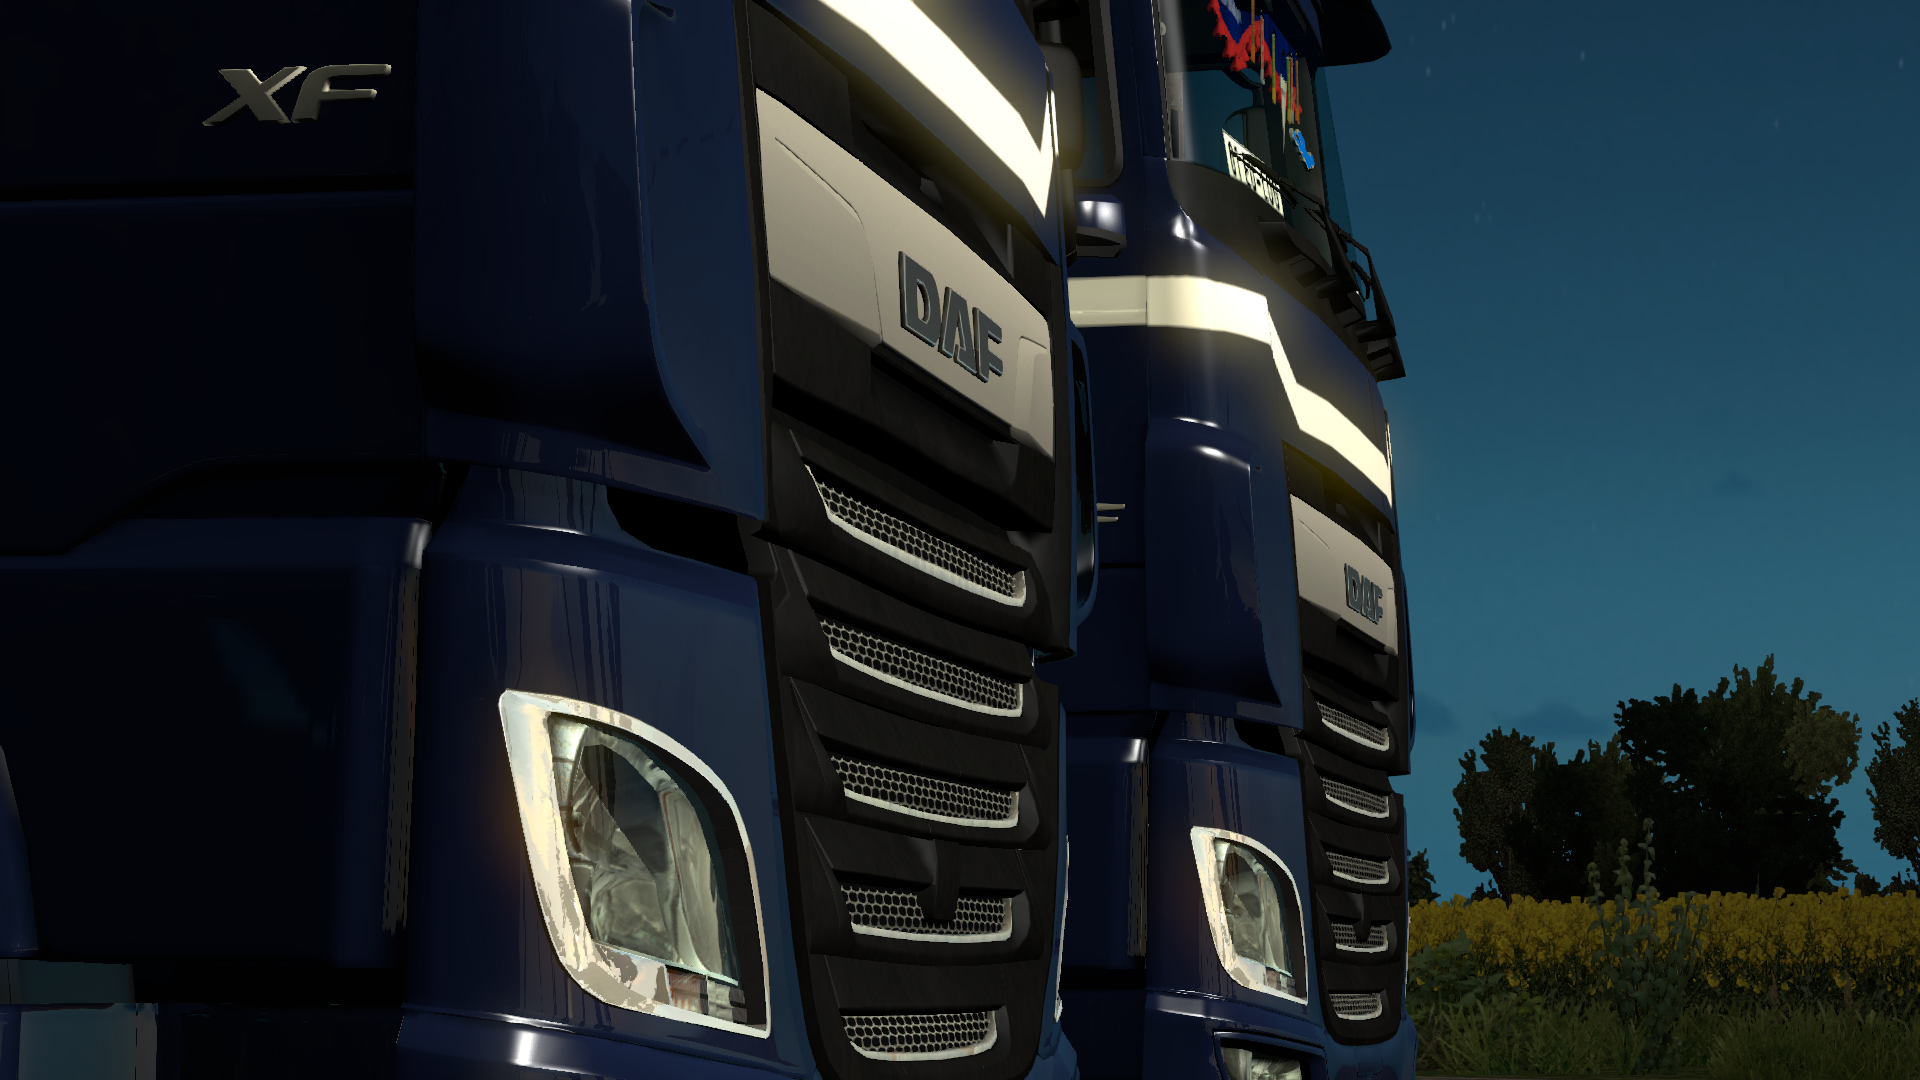 ets2_20181207_171147_00.png